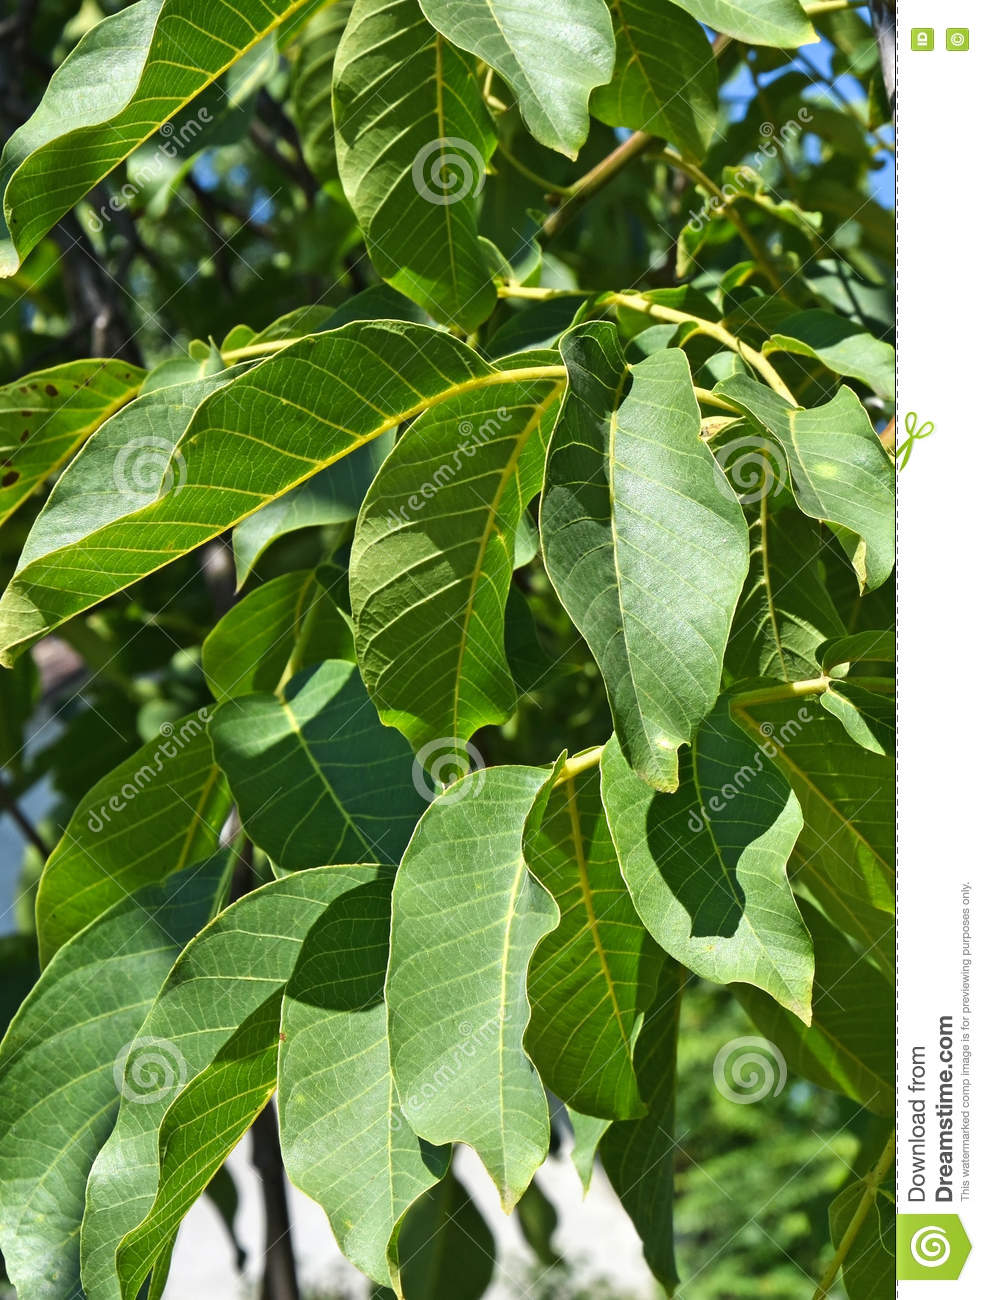 Leaves Of The Walnut Tree In Summer Stock Image - Image of